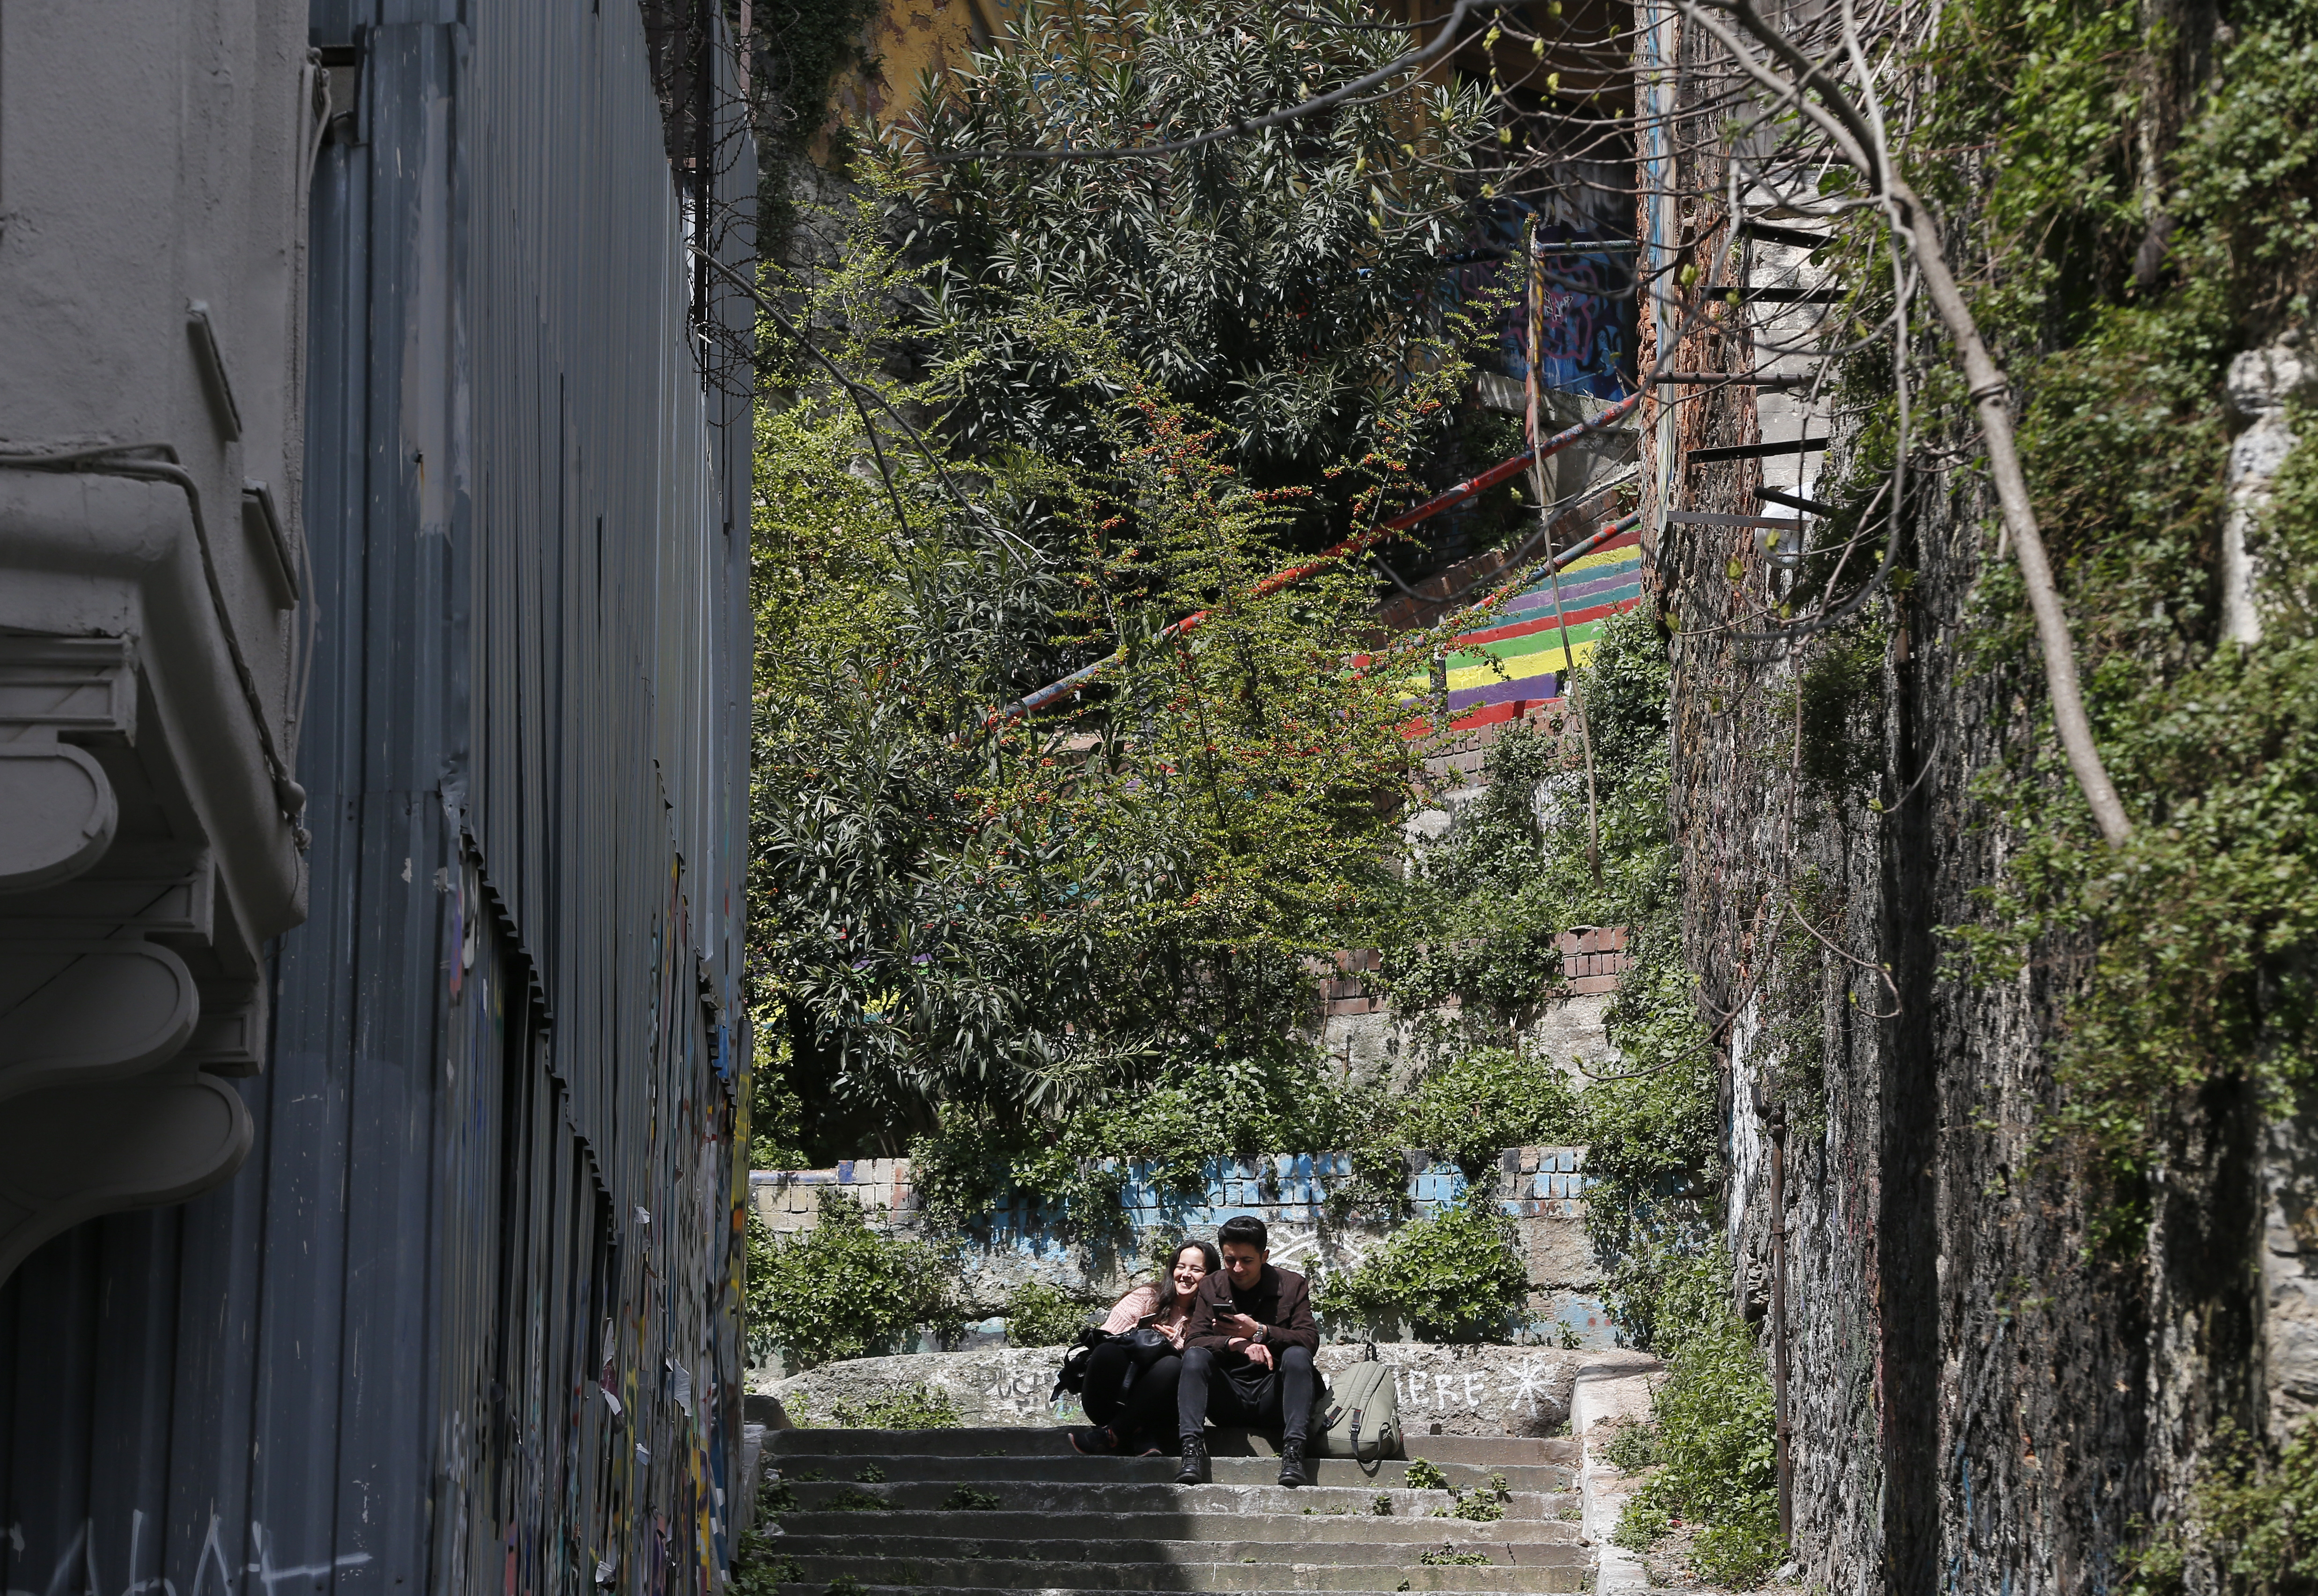 In this Thursday, April 4, 2019 photo, a couple sits in Istanbul's fashionable Cihangir neighbourhood. The mood among opposition supporters in Turkey's biggest city is one of jubilation but also worry - fear that their win in Istanbul's mayoral race could be overturned in a recount taking place after the ruling party challenged the election results. (AP Photo/Lefteris Pitarakis)